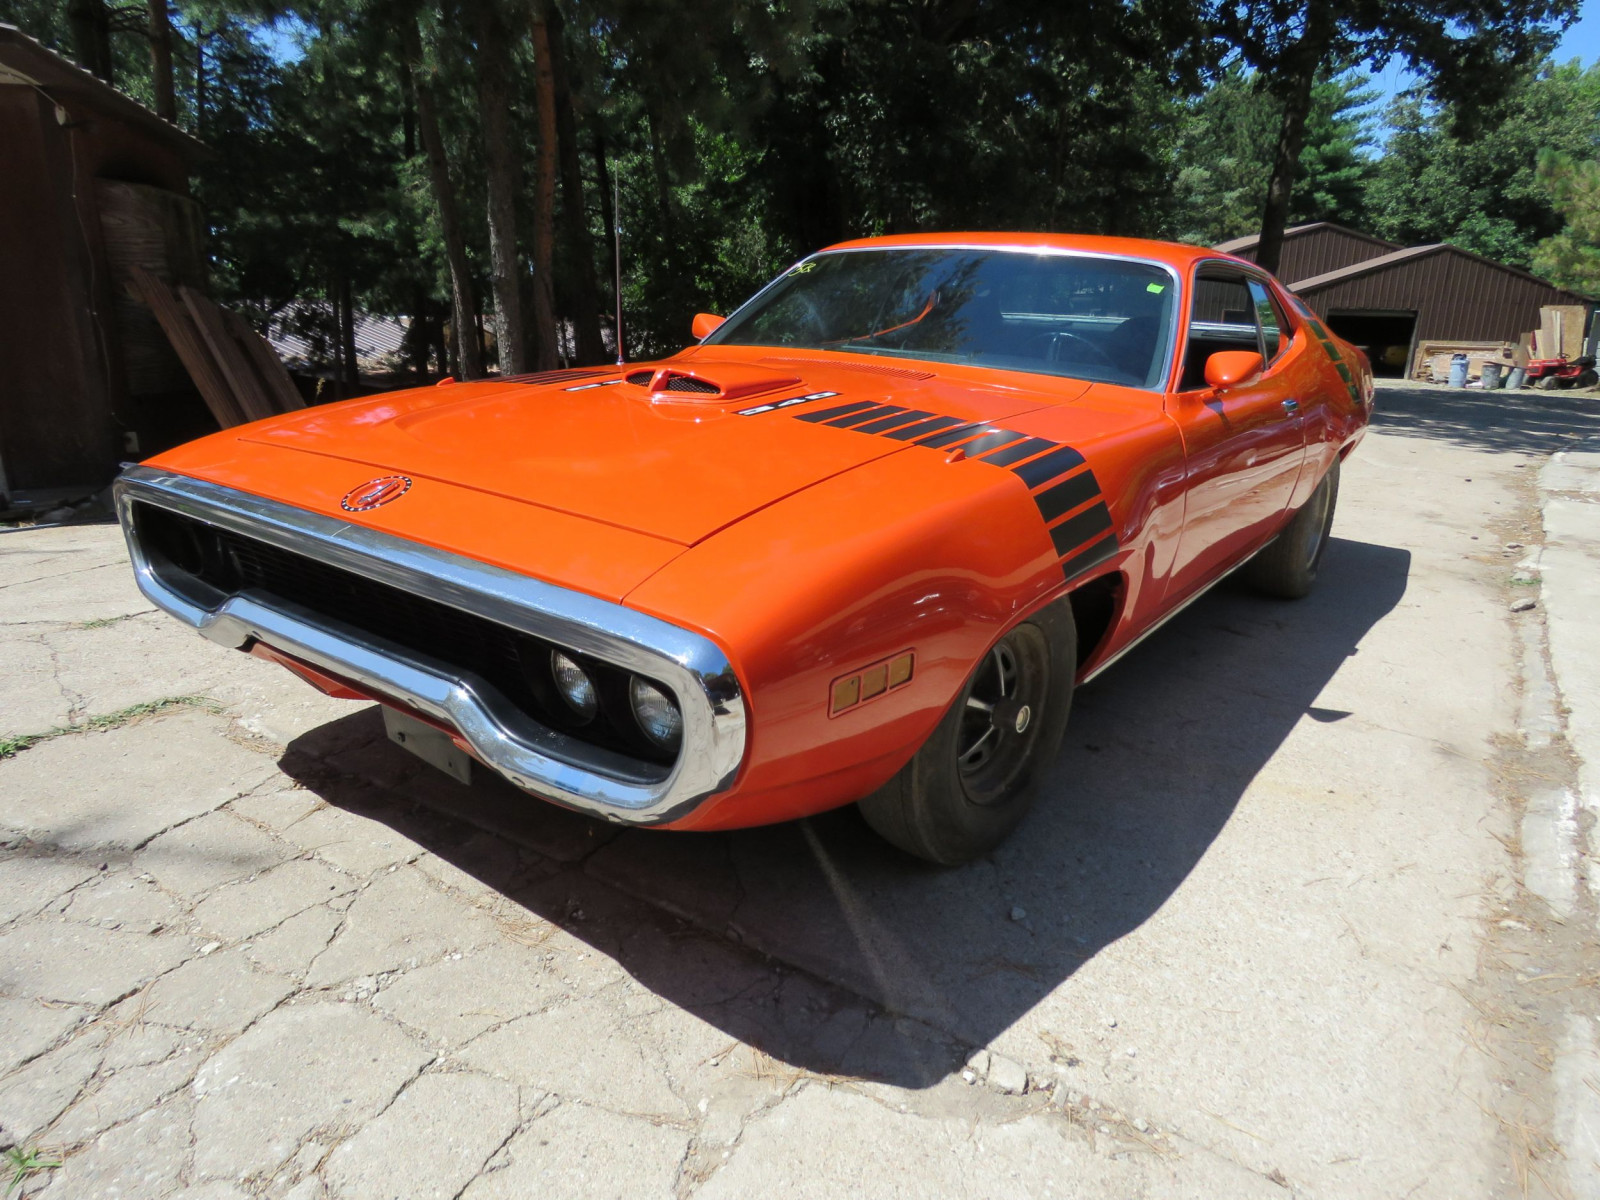 1971 Plymouth Satellite 2dr HT - Image 1